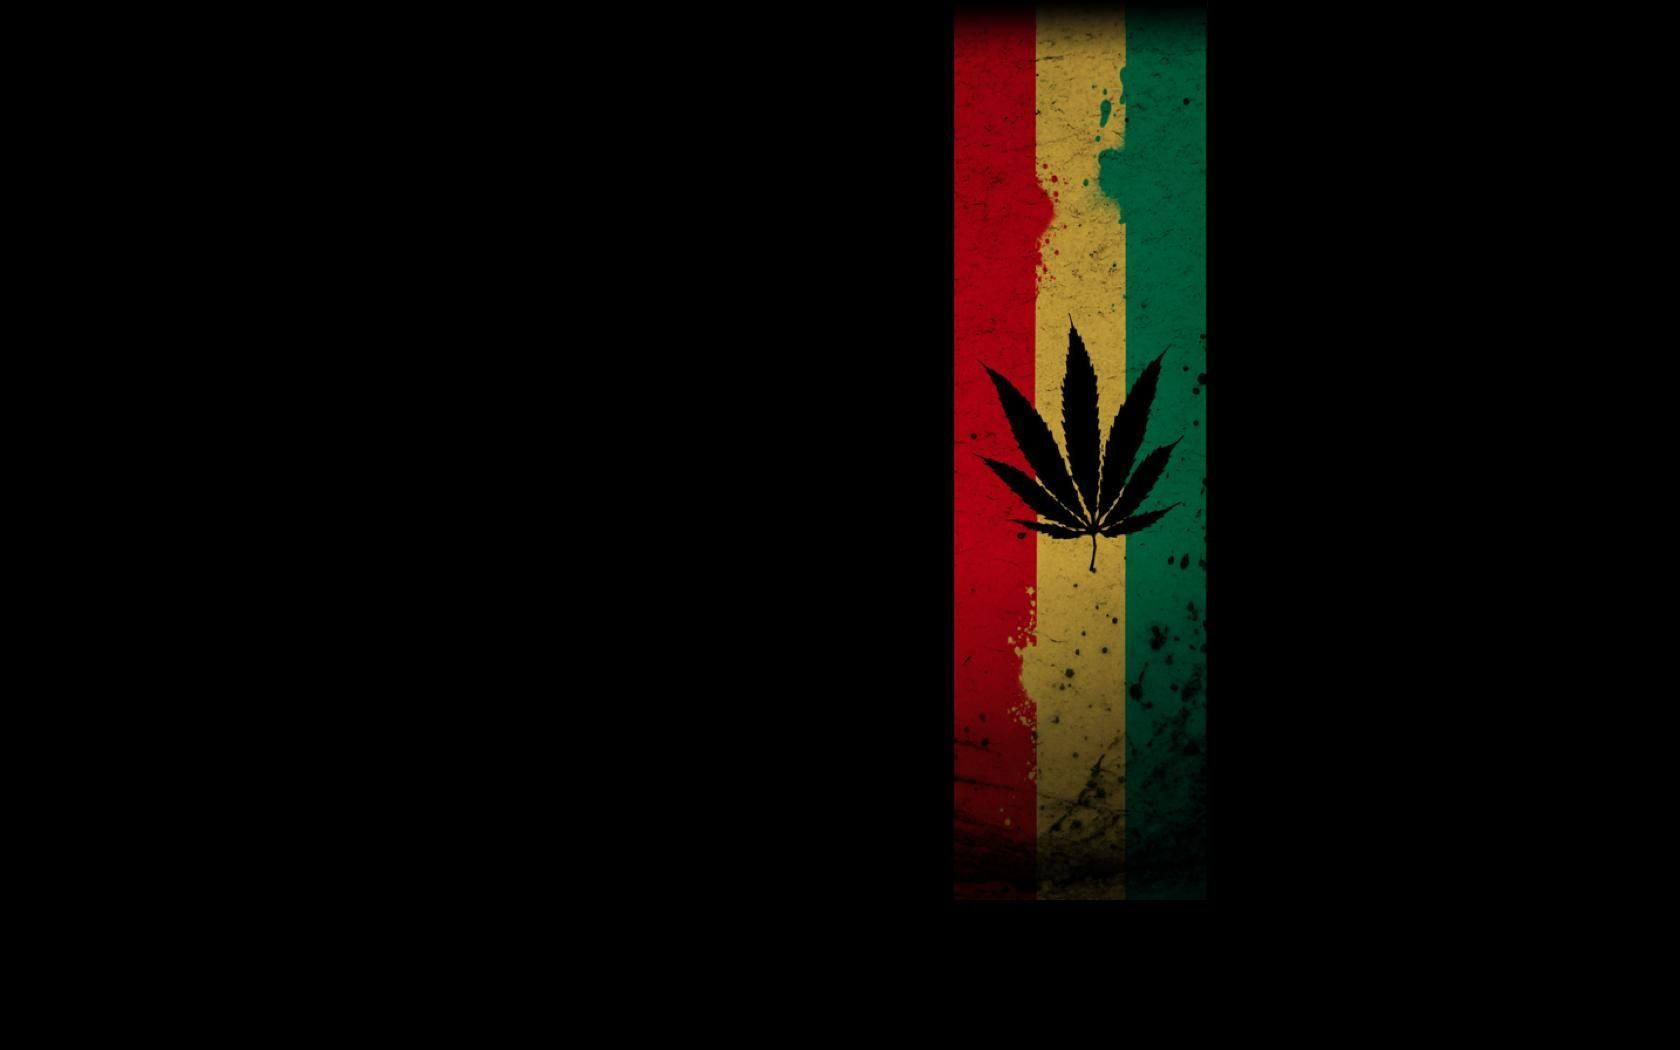 HD Wallpaper Rasta Picture Free Download. HD Wallpaper Rasta Picture Free Download   Ideas for the House